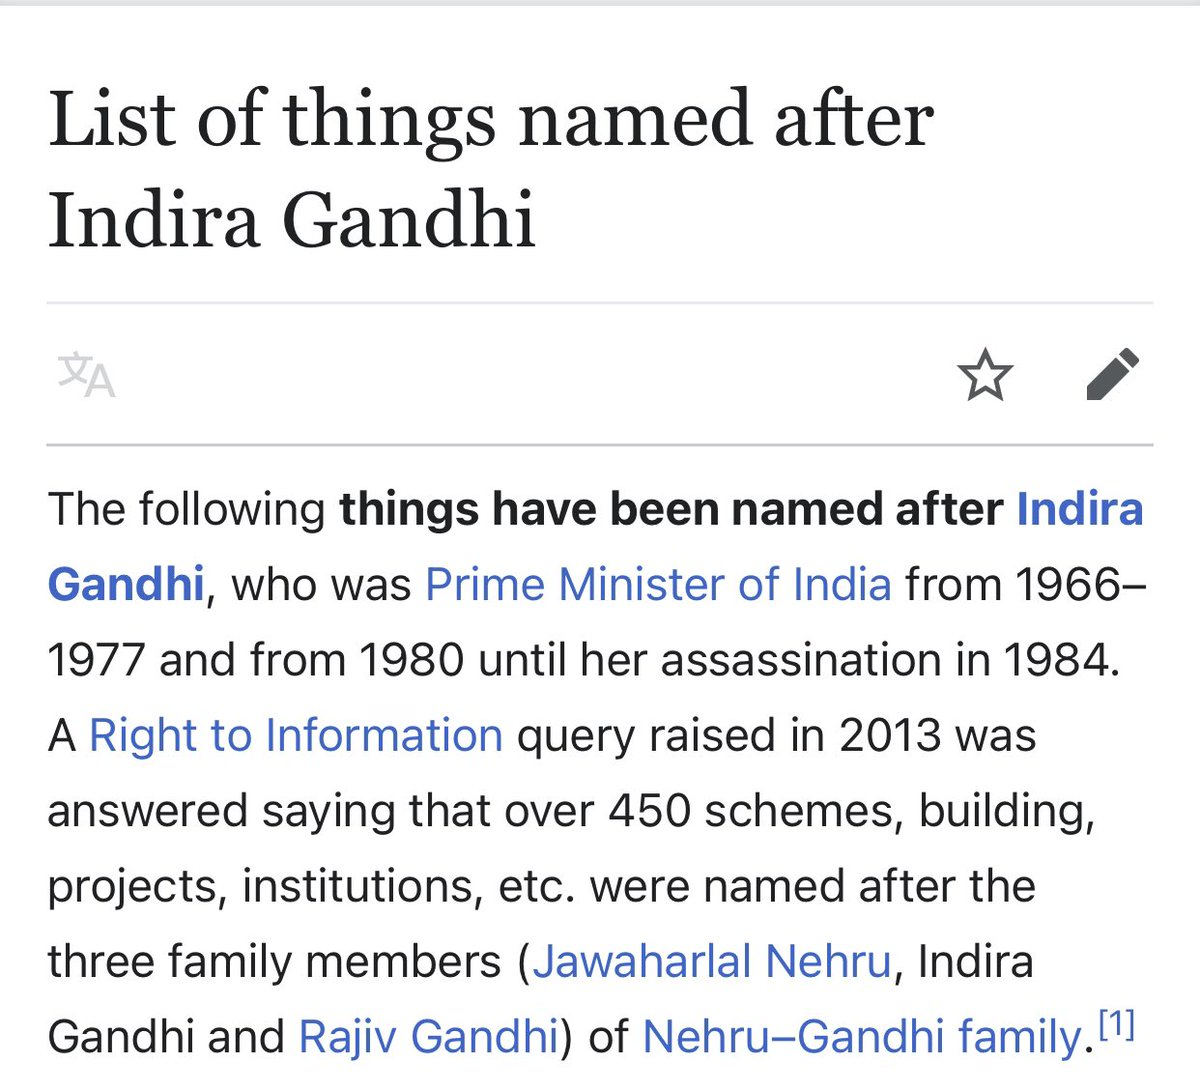 India today is questioning about 450 schemes, buildings, projects & institutions named after 3 family members   #NarendraModiCricketStadium is a #MasterStroke